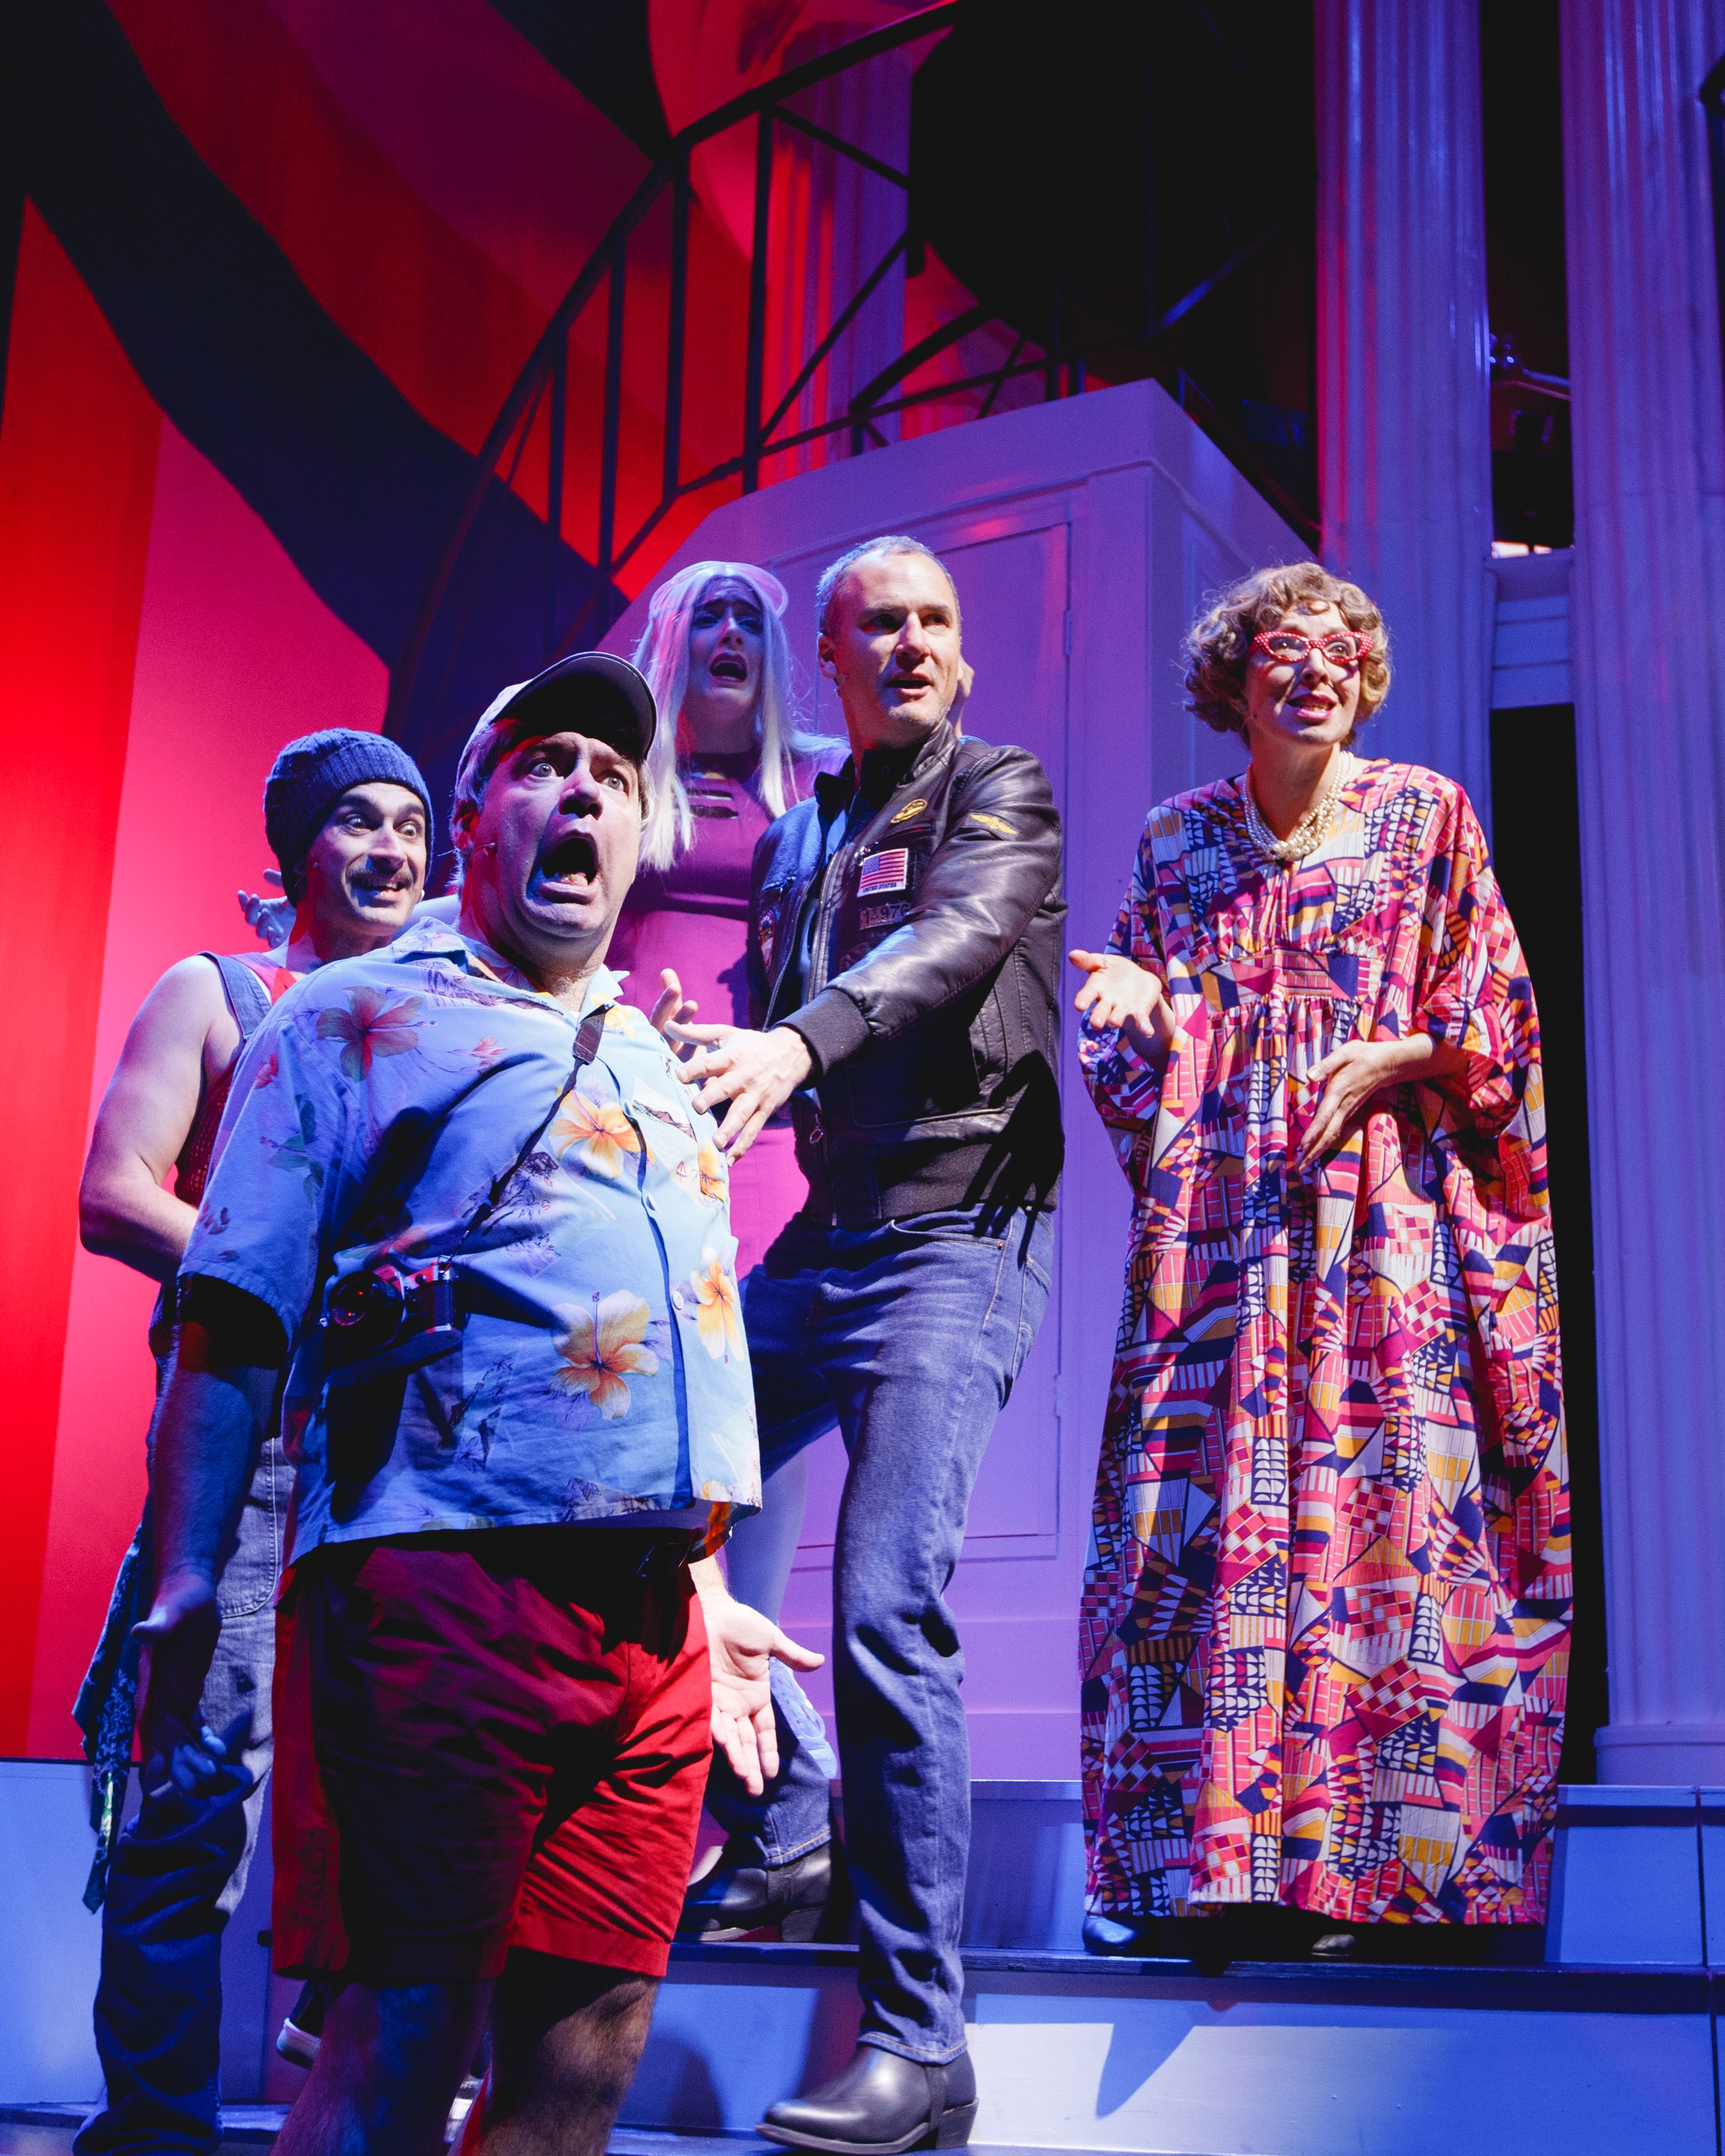 04 Luke Hewitt, Brendan Hanson, Megan Kozak, Matt Dyktynski and Clare Moore. Clinton The Musical. image by Daniel James G~1.jpg